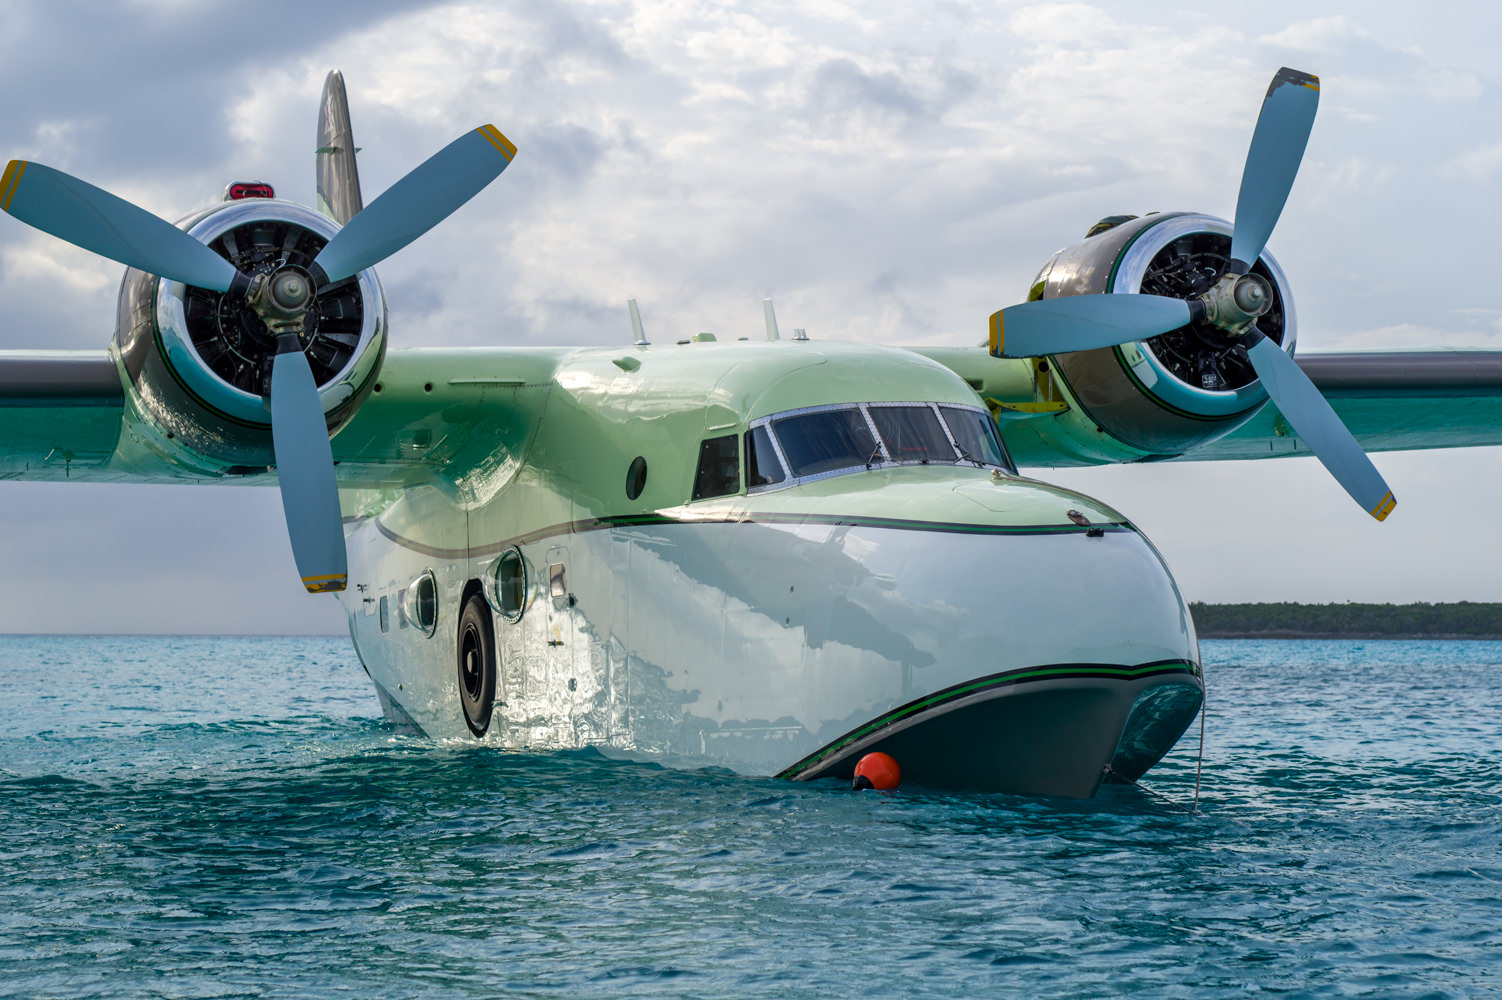 Flying Boat Grumman Albatross, drone photography by Photoflight Aerial Media.